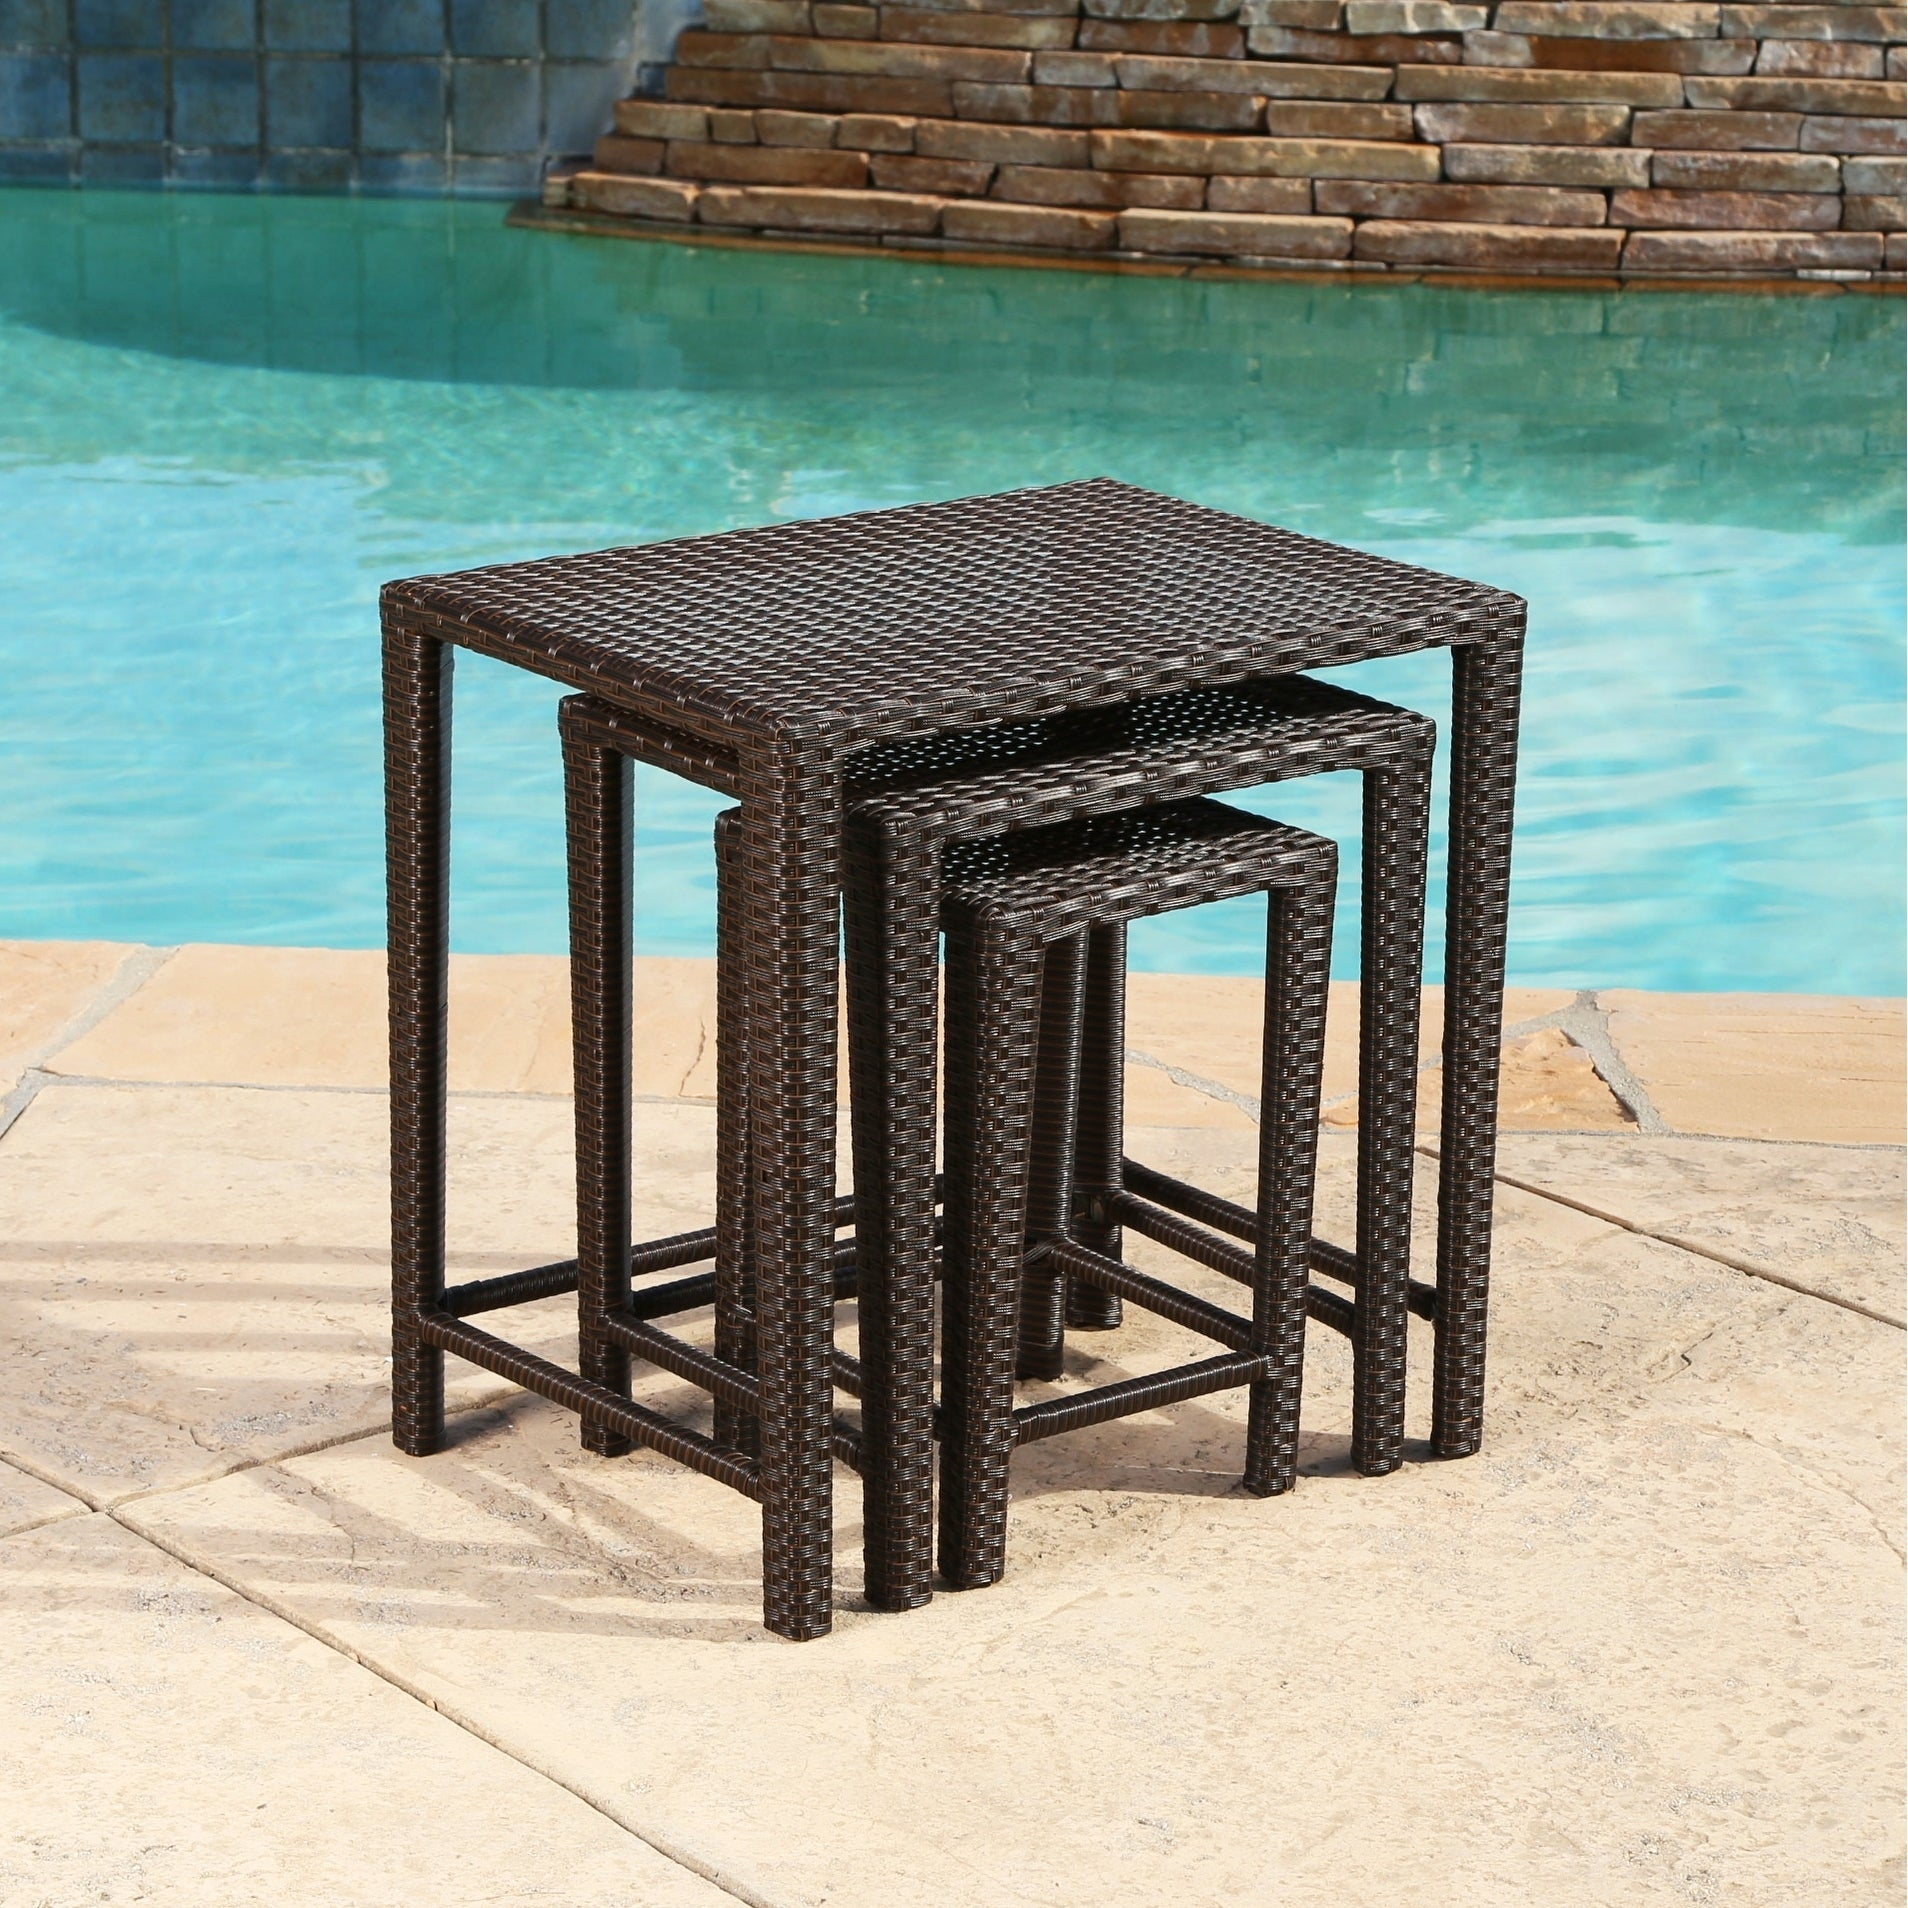 Shop Abbyson Renee Outdoor Wicker Nesting Tables   On Sale   Free Shipping  Today   Overstock.com   12074803